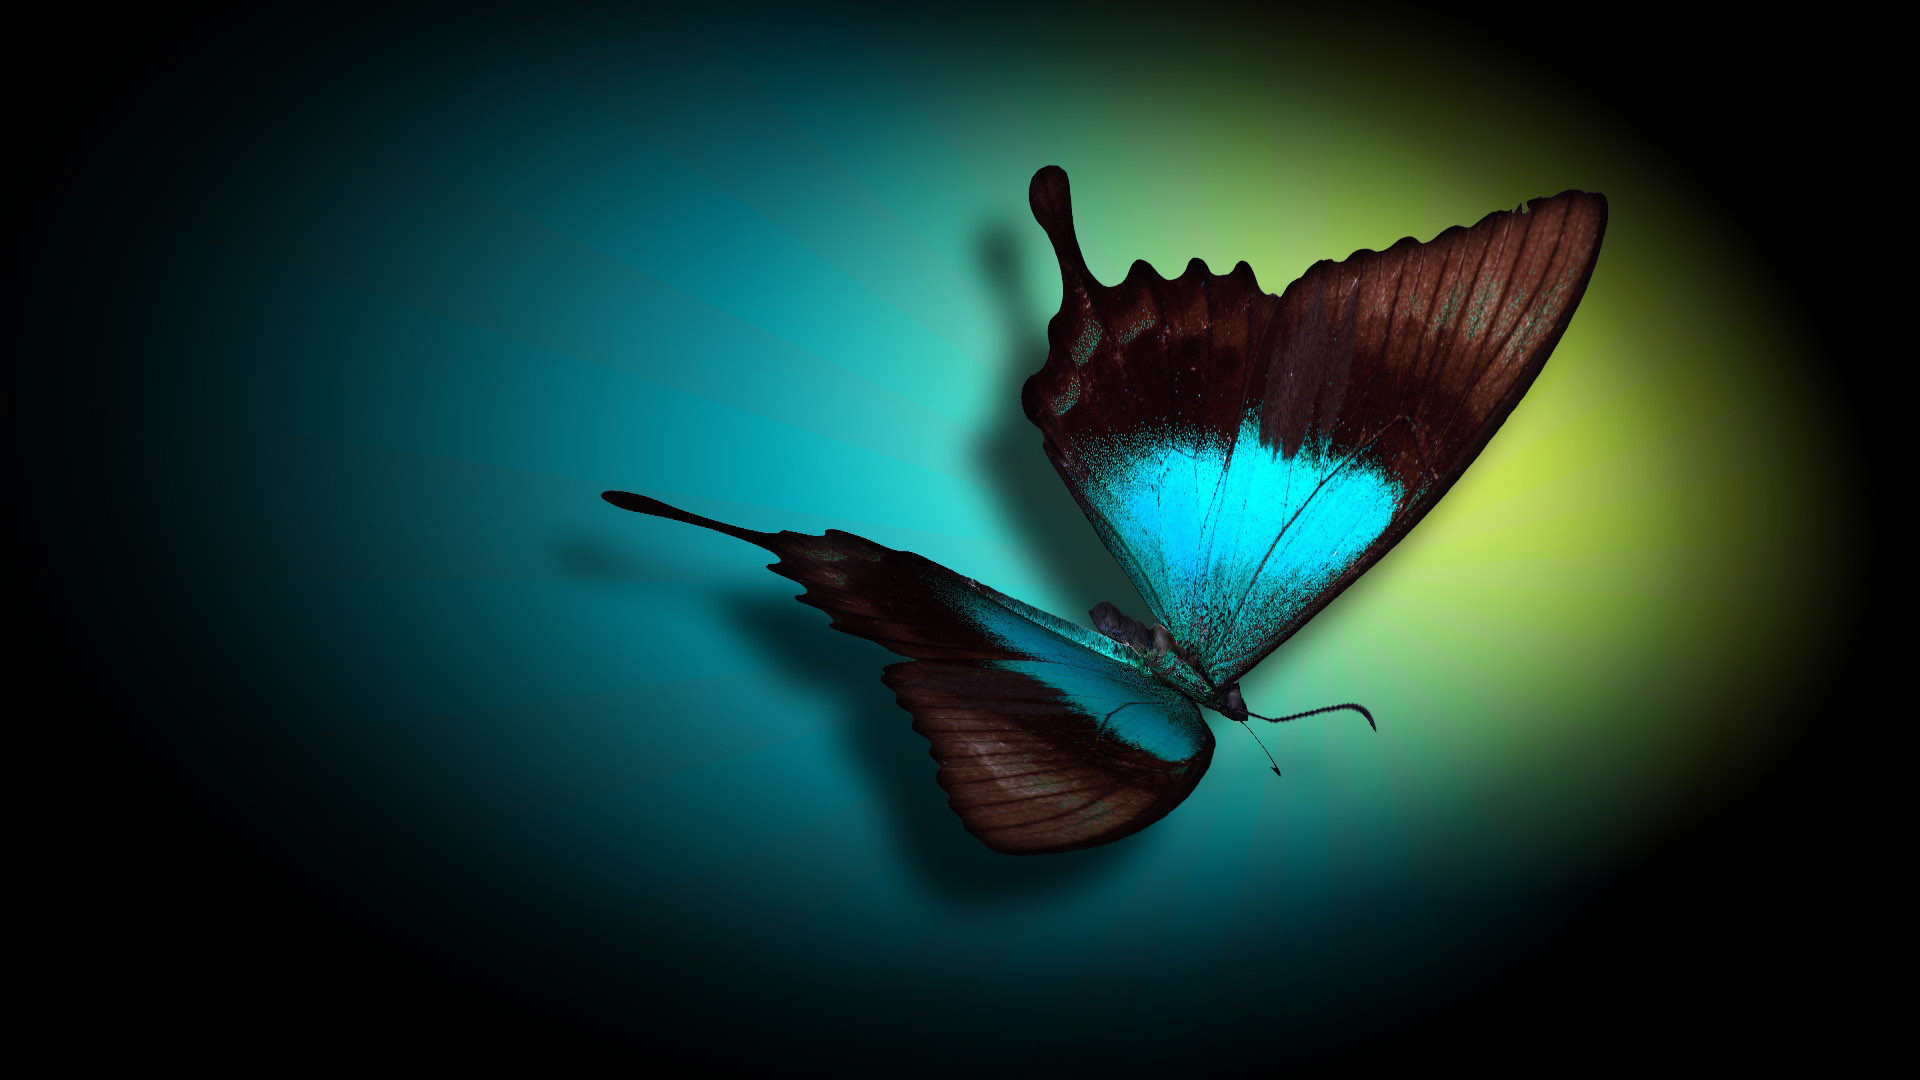 Gothic Butterfly Wallpaper Iphone Other